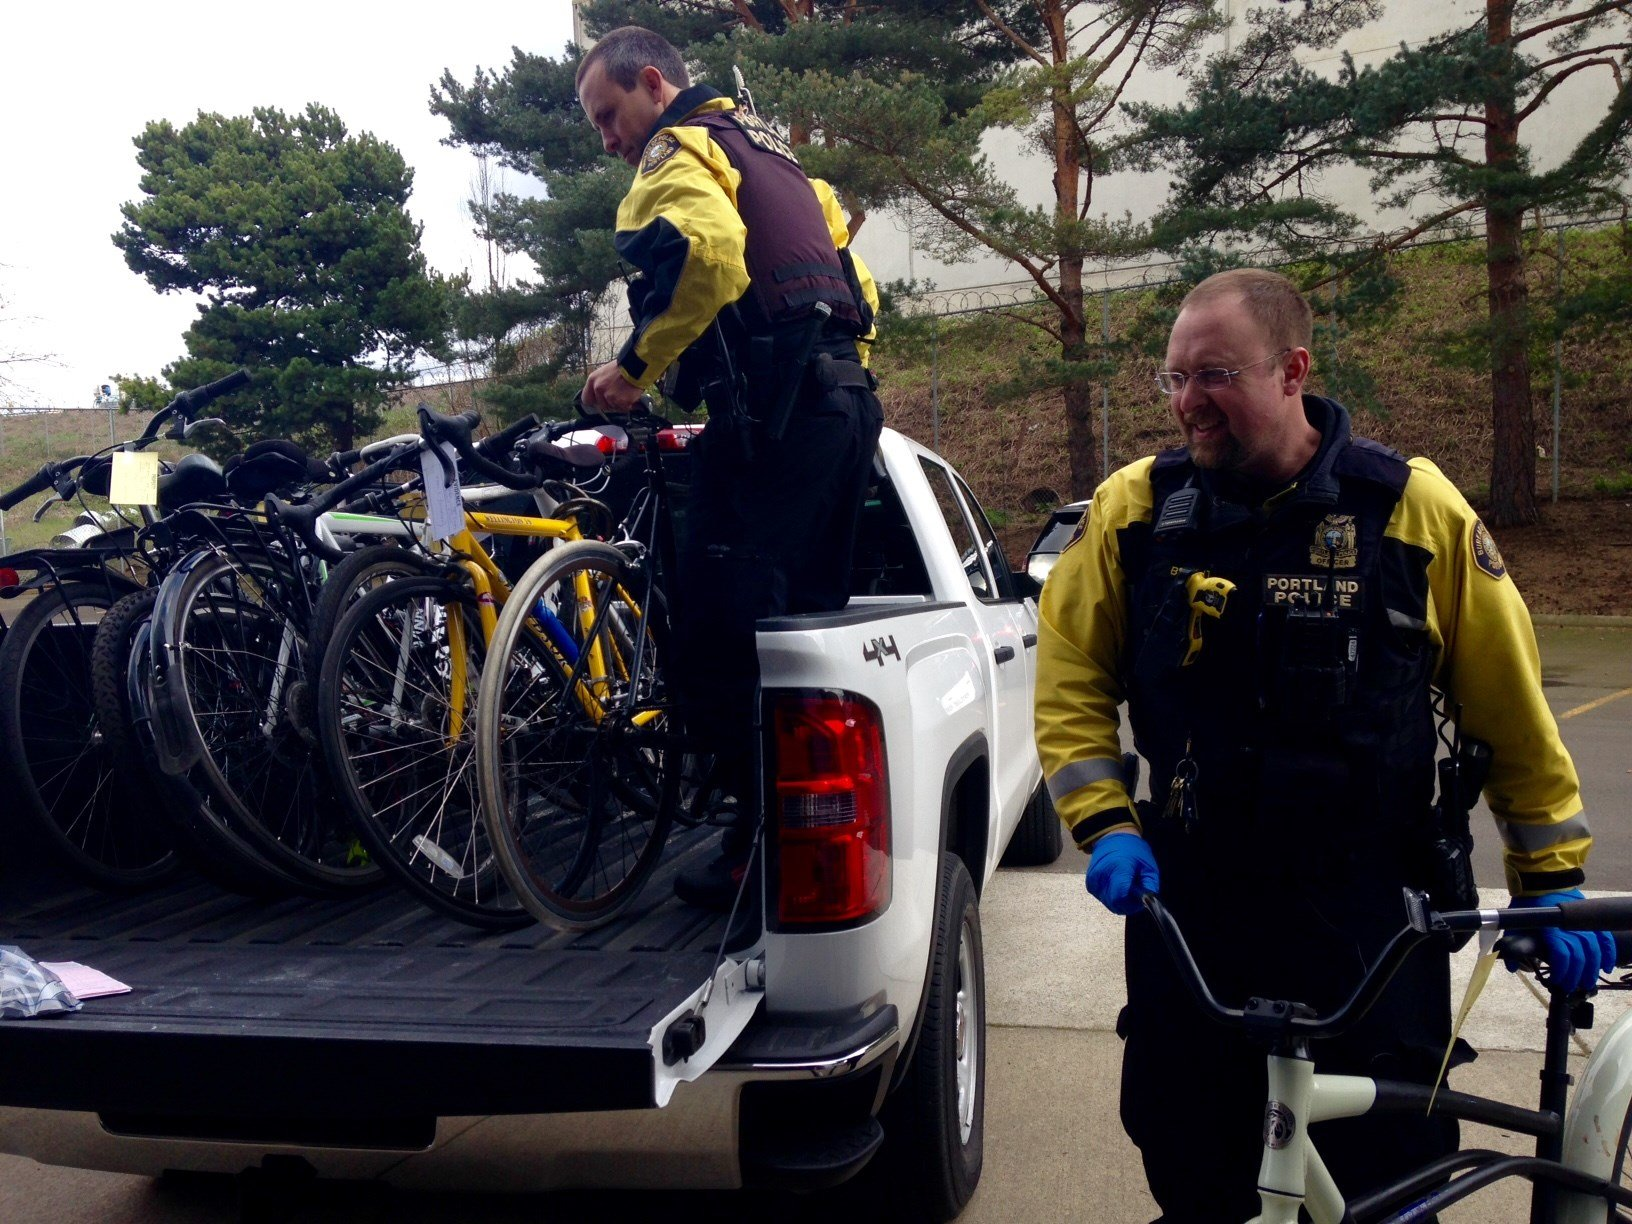 Officers Sanders and Bryant unloading stolen bikes into the police property room.